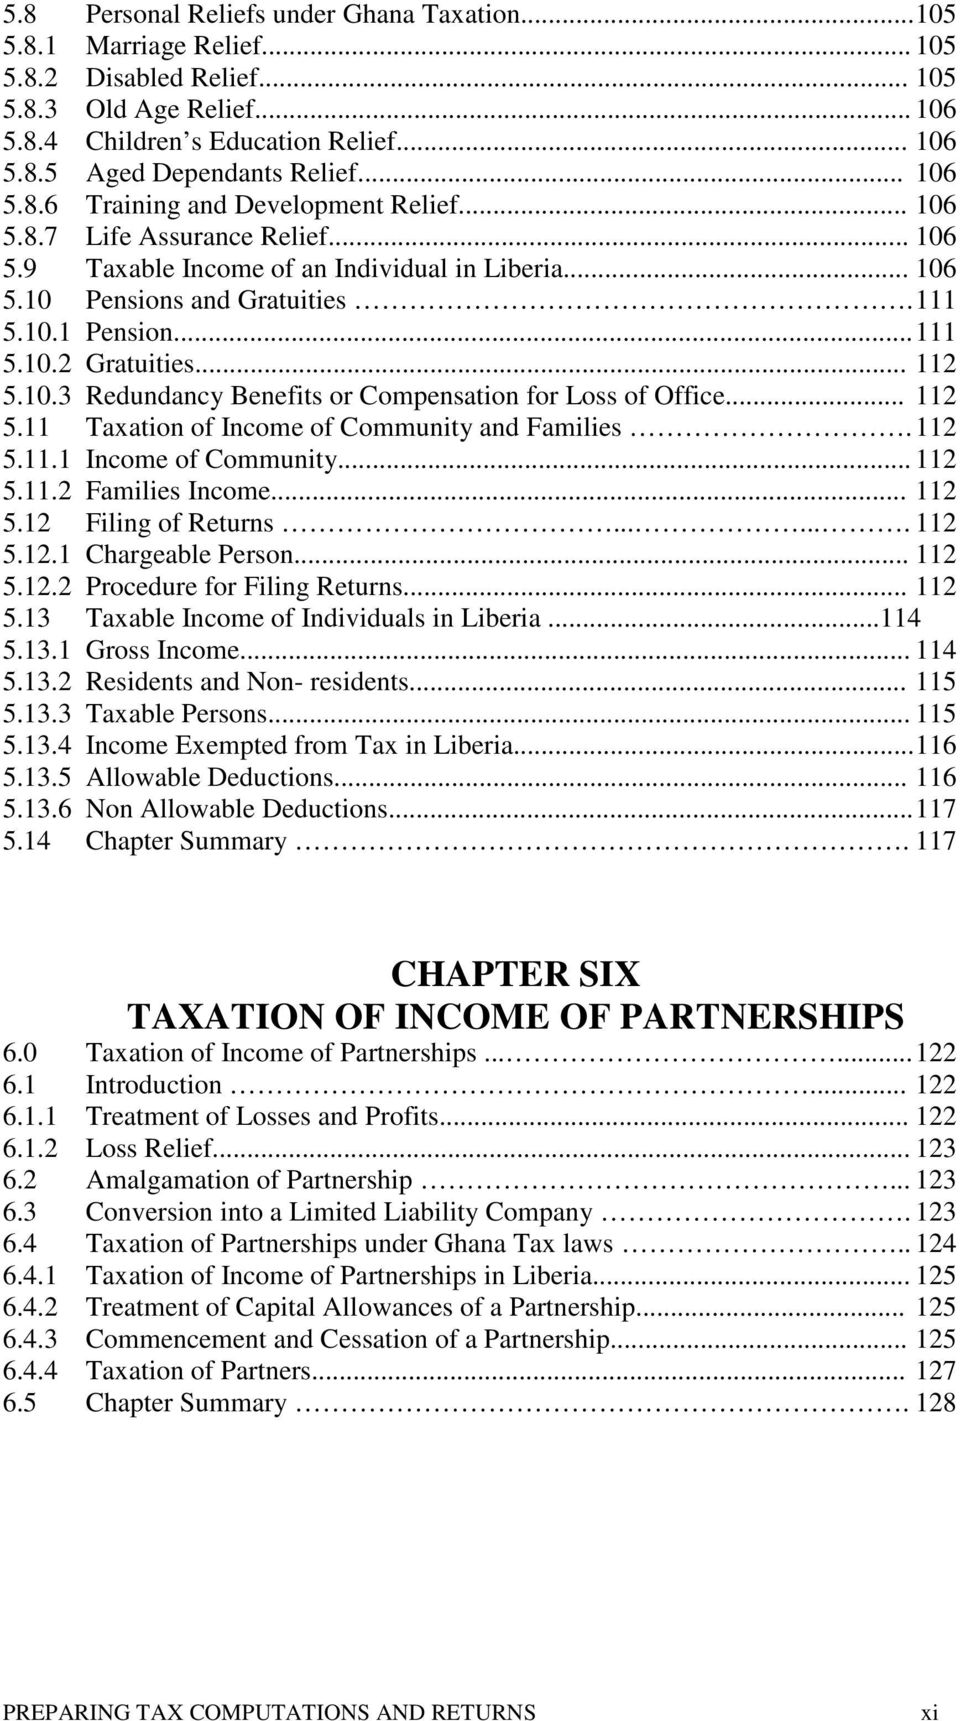 principles of taxation in nigeria Definition of taxation:  taxation principles welfare loss of taxation ability-to-pay taxation international taxation taxation without representation .